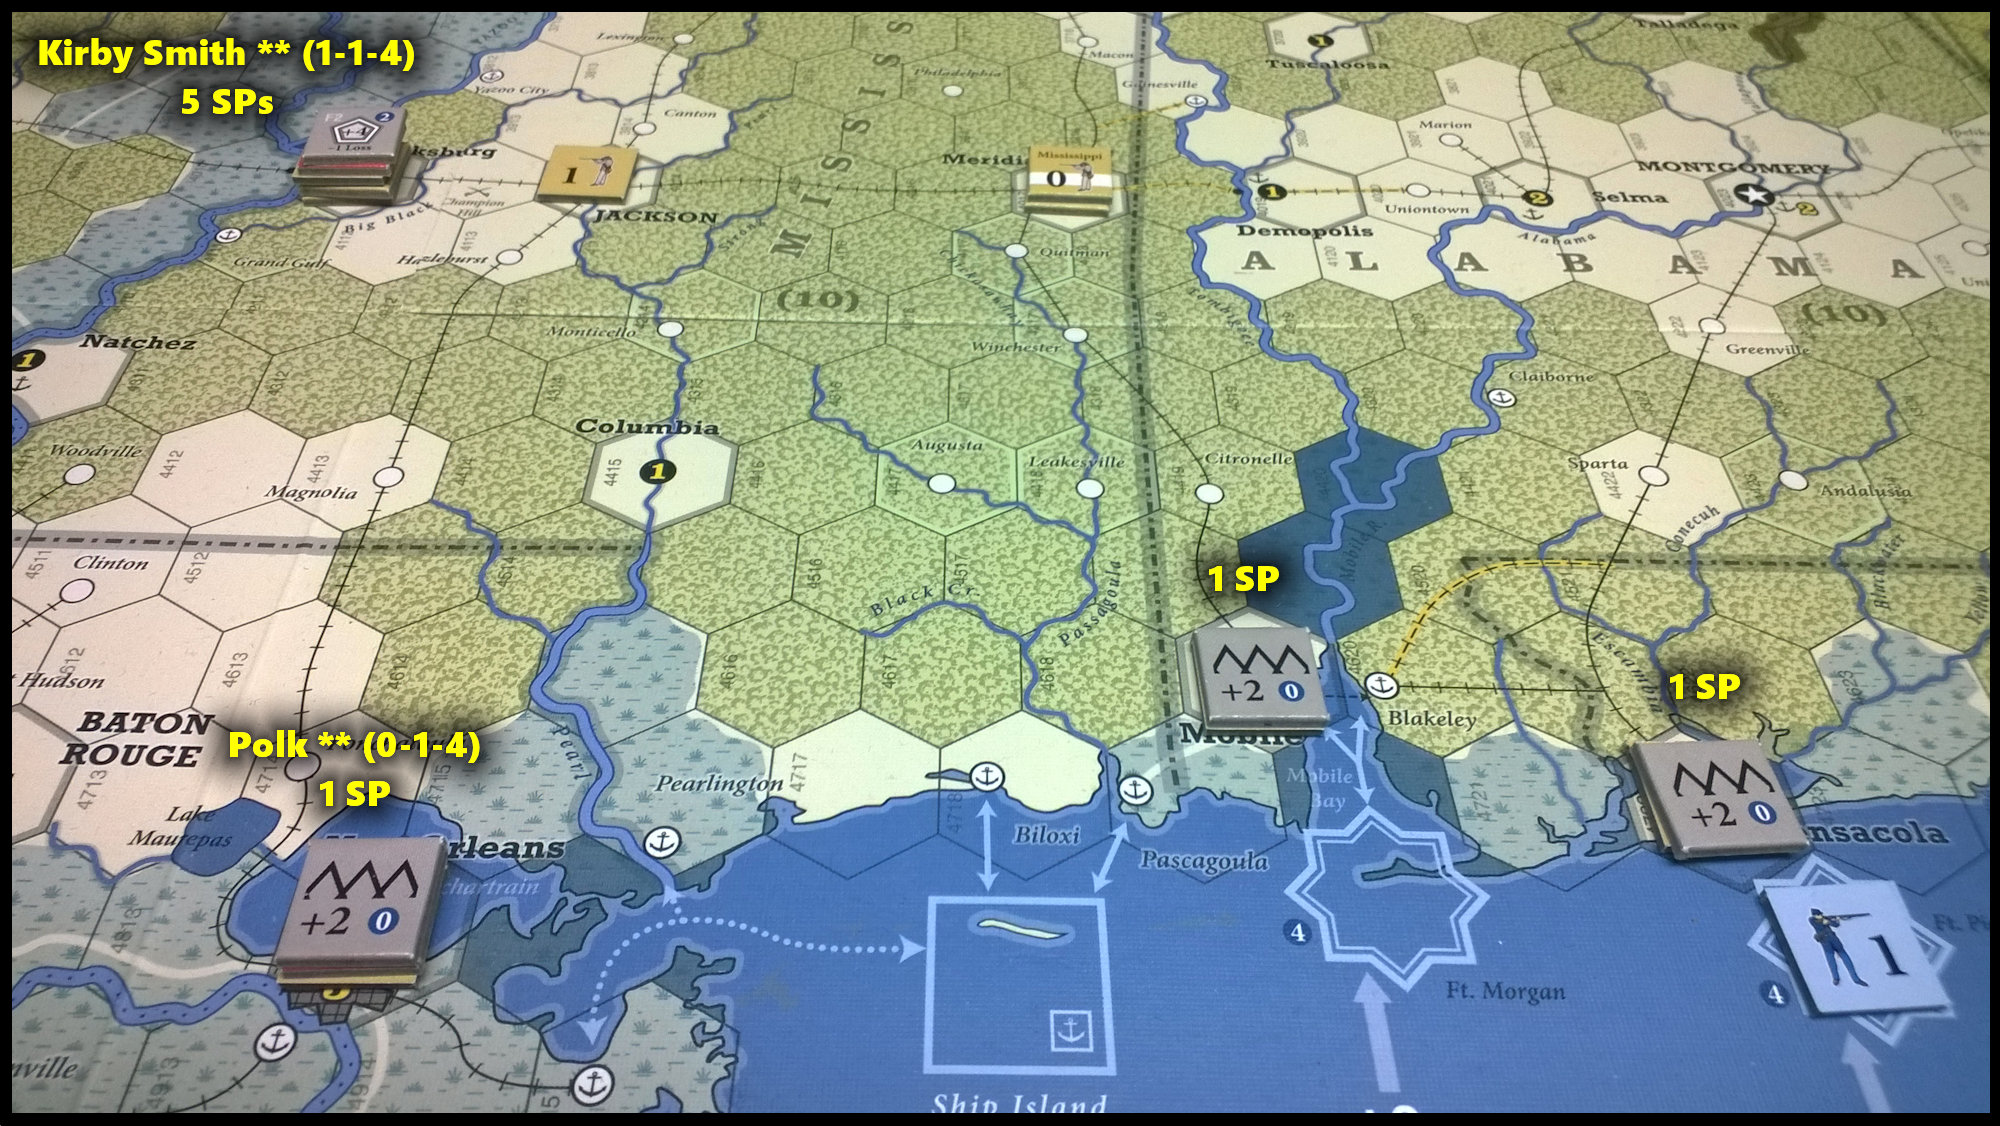 The U.S. Civil War: The Gulf coast area at the end of Game Turn 8